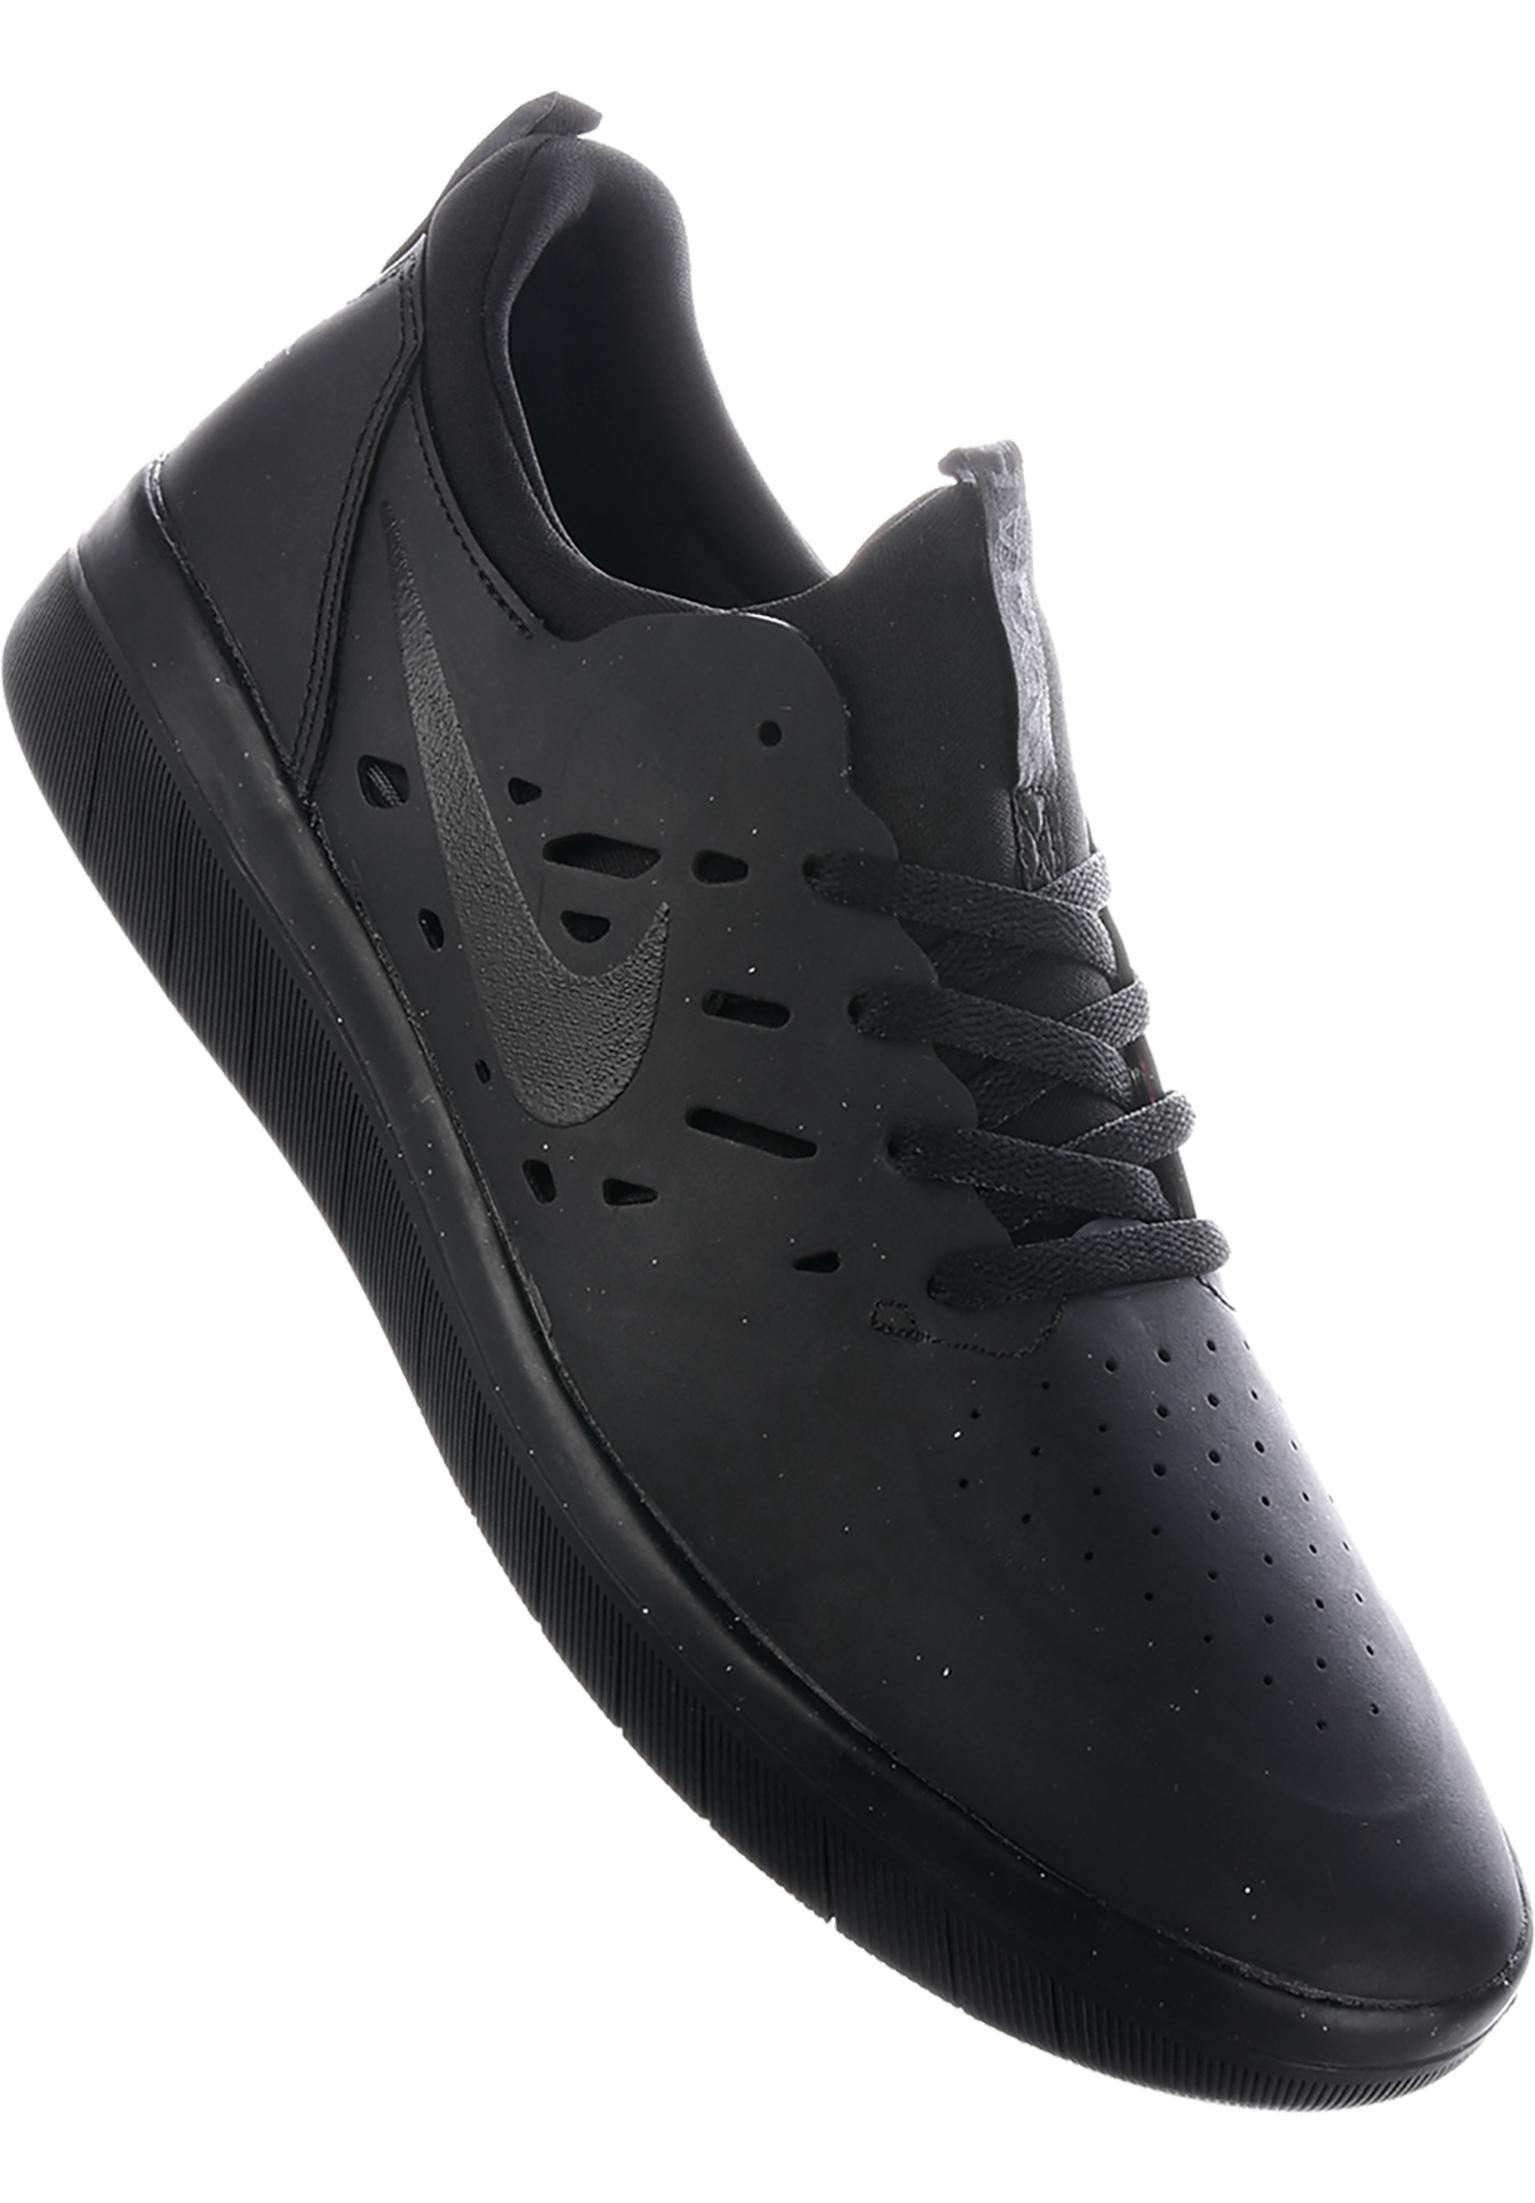 a491f3149a079a Nyjah Free Skateboarding Nike SB All Shoes in black-black-black for Men